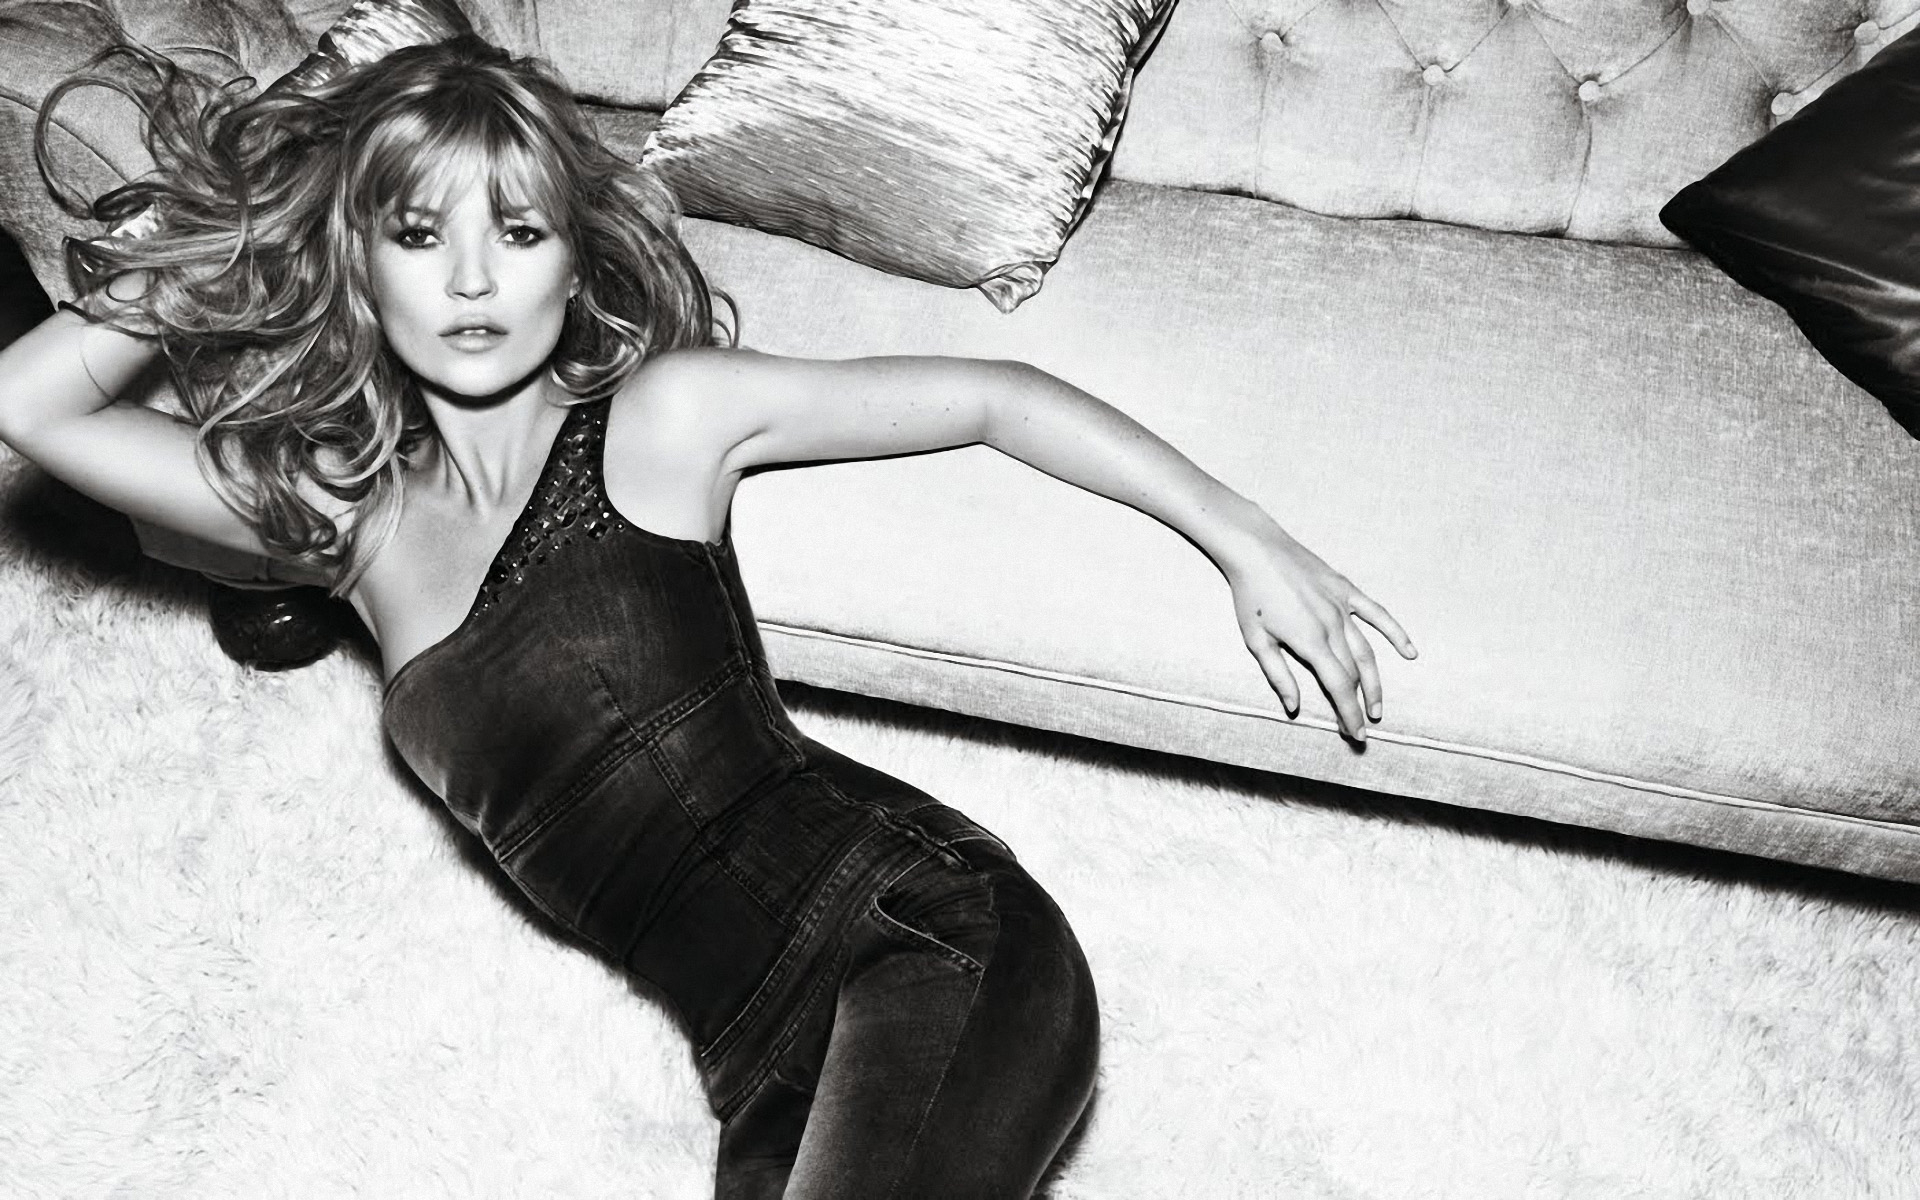 1920x1200 - Kate Moss Wallpapers 6